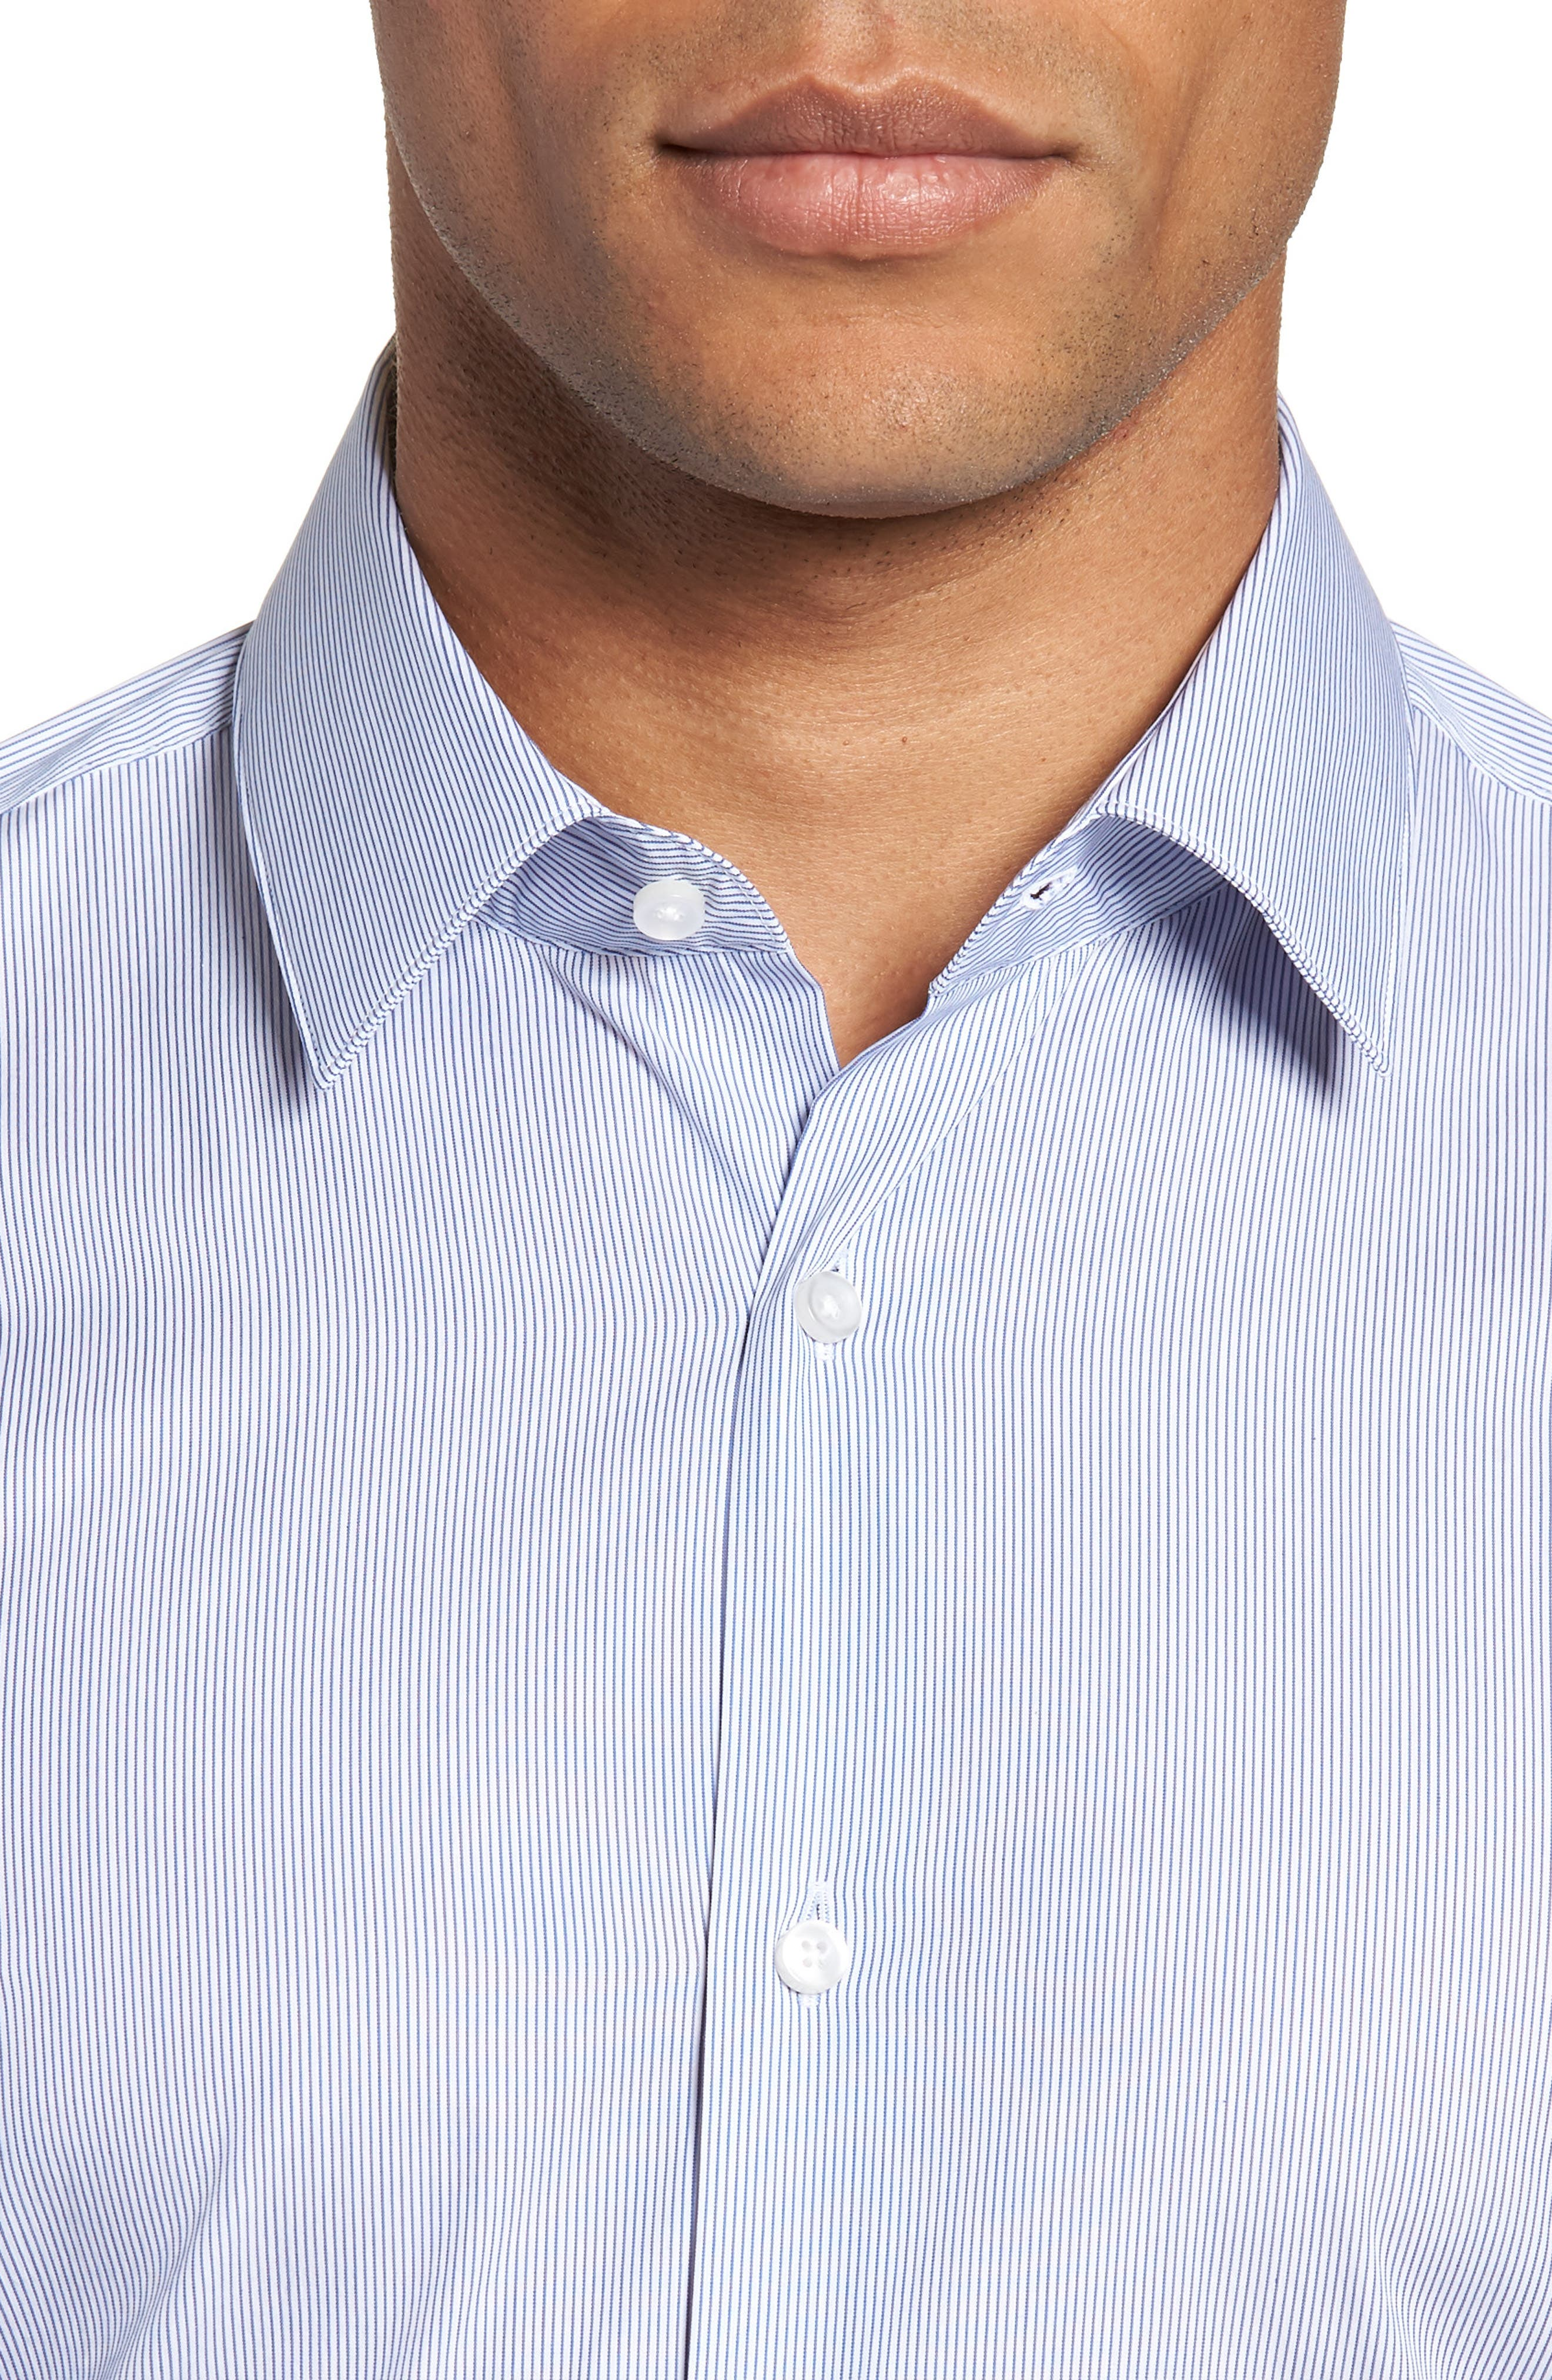 Isko Slim Fit Stretch Stripe Dress Shirt,                             Alternate thumbnail 2, color,                             BLUE